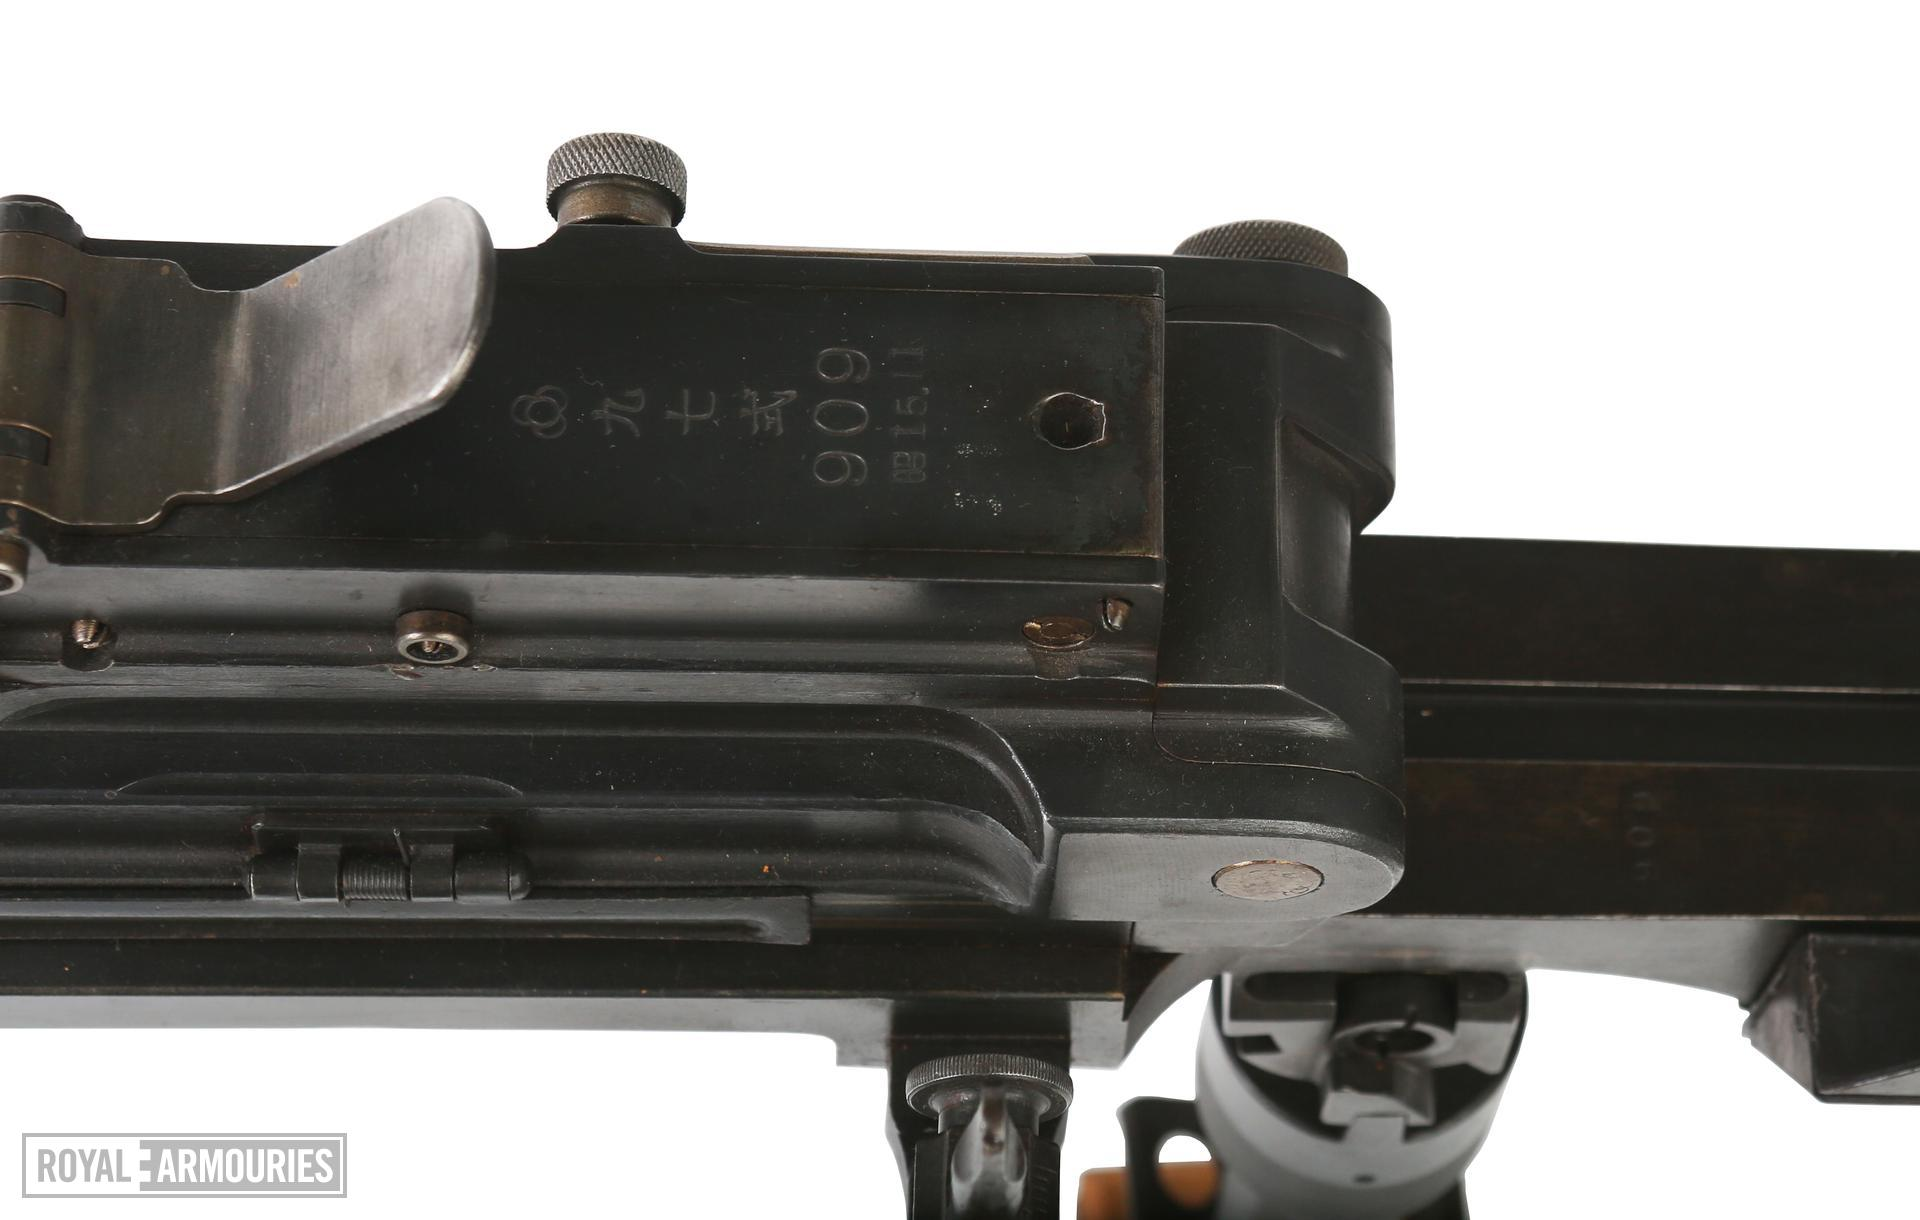 PR.1730 - Centrefire automatic rifle, Type 97 for anti tank use